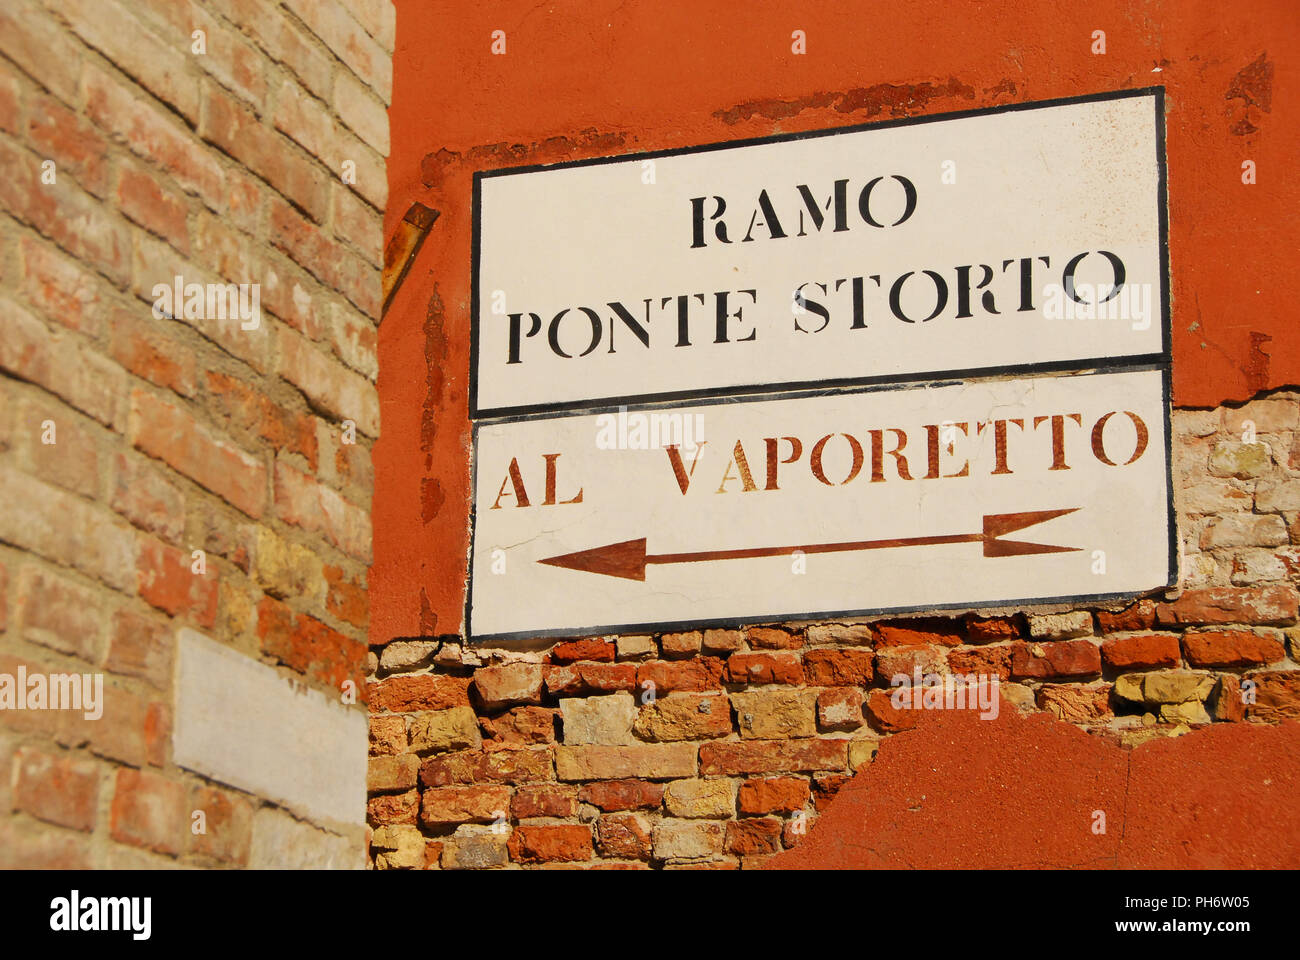 'Vaporetto' (venetian water bus) old traditional road sign on a wall in Venice - Stock Image